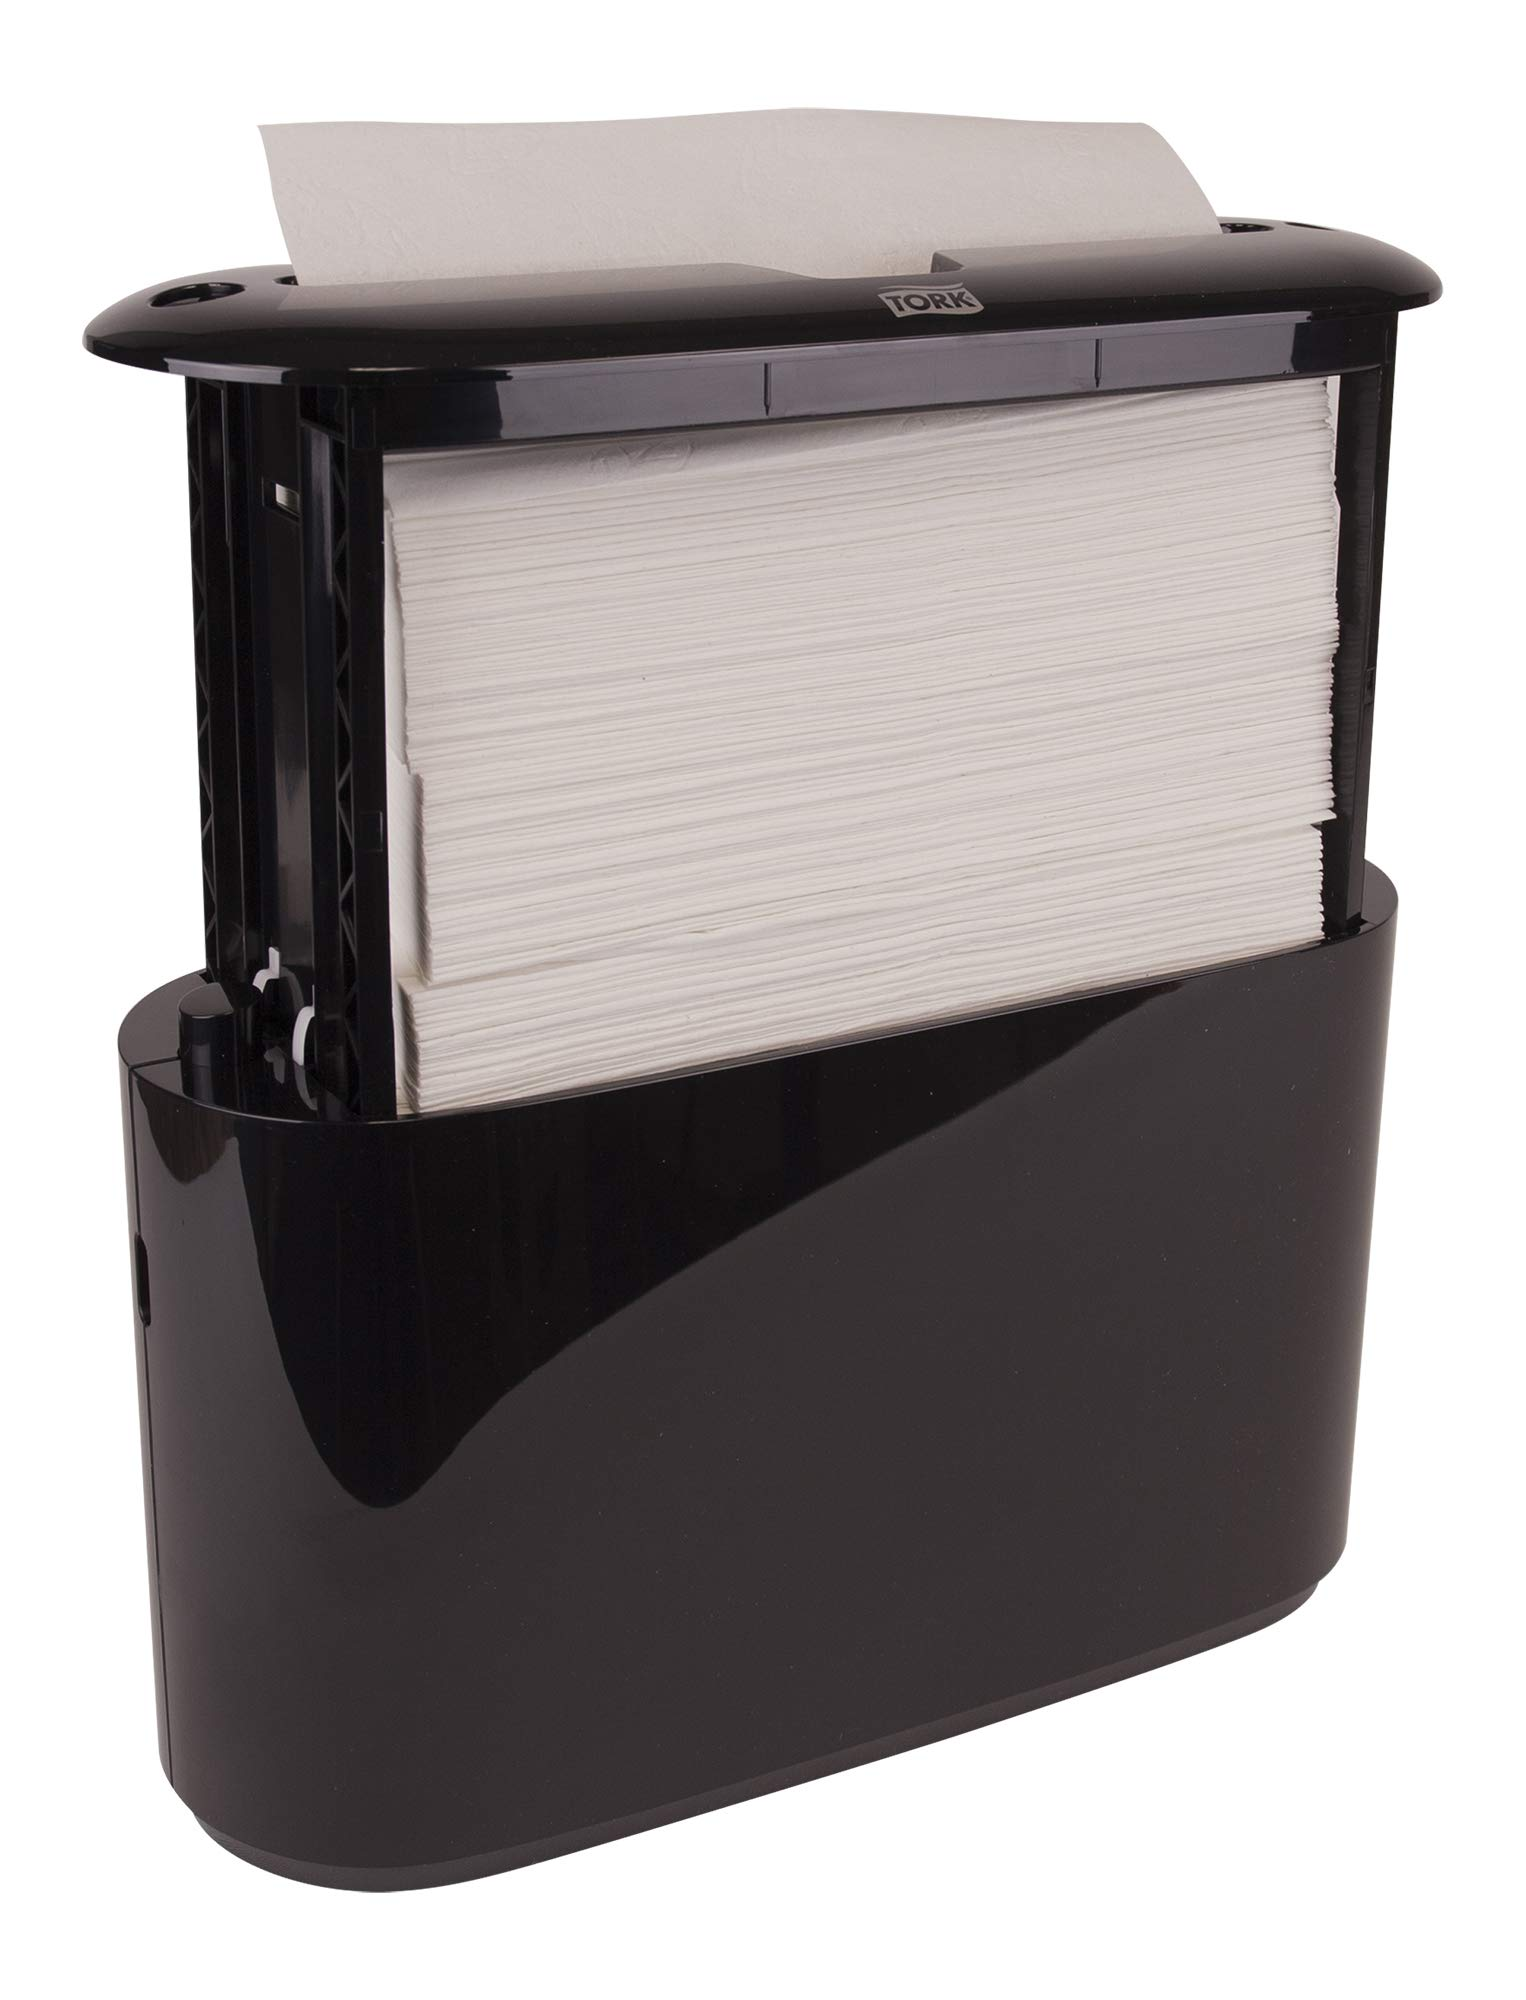 Tork Xpress 302028 Countertop Multifold Hand Towel Dispenser, Plastic, 7.92'' Height x 12.68'' Width x 4.56'' Depth, Black (Case of 1) For use with Tork MB550A, MB640, MB540A by Tork (Image #6)